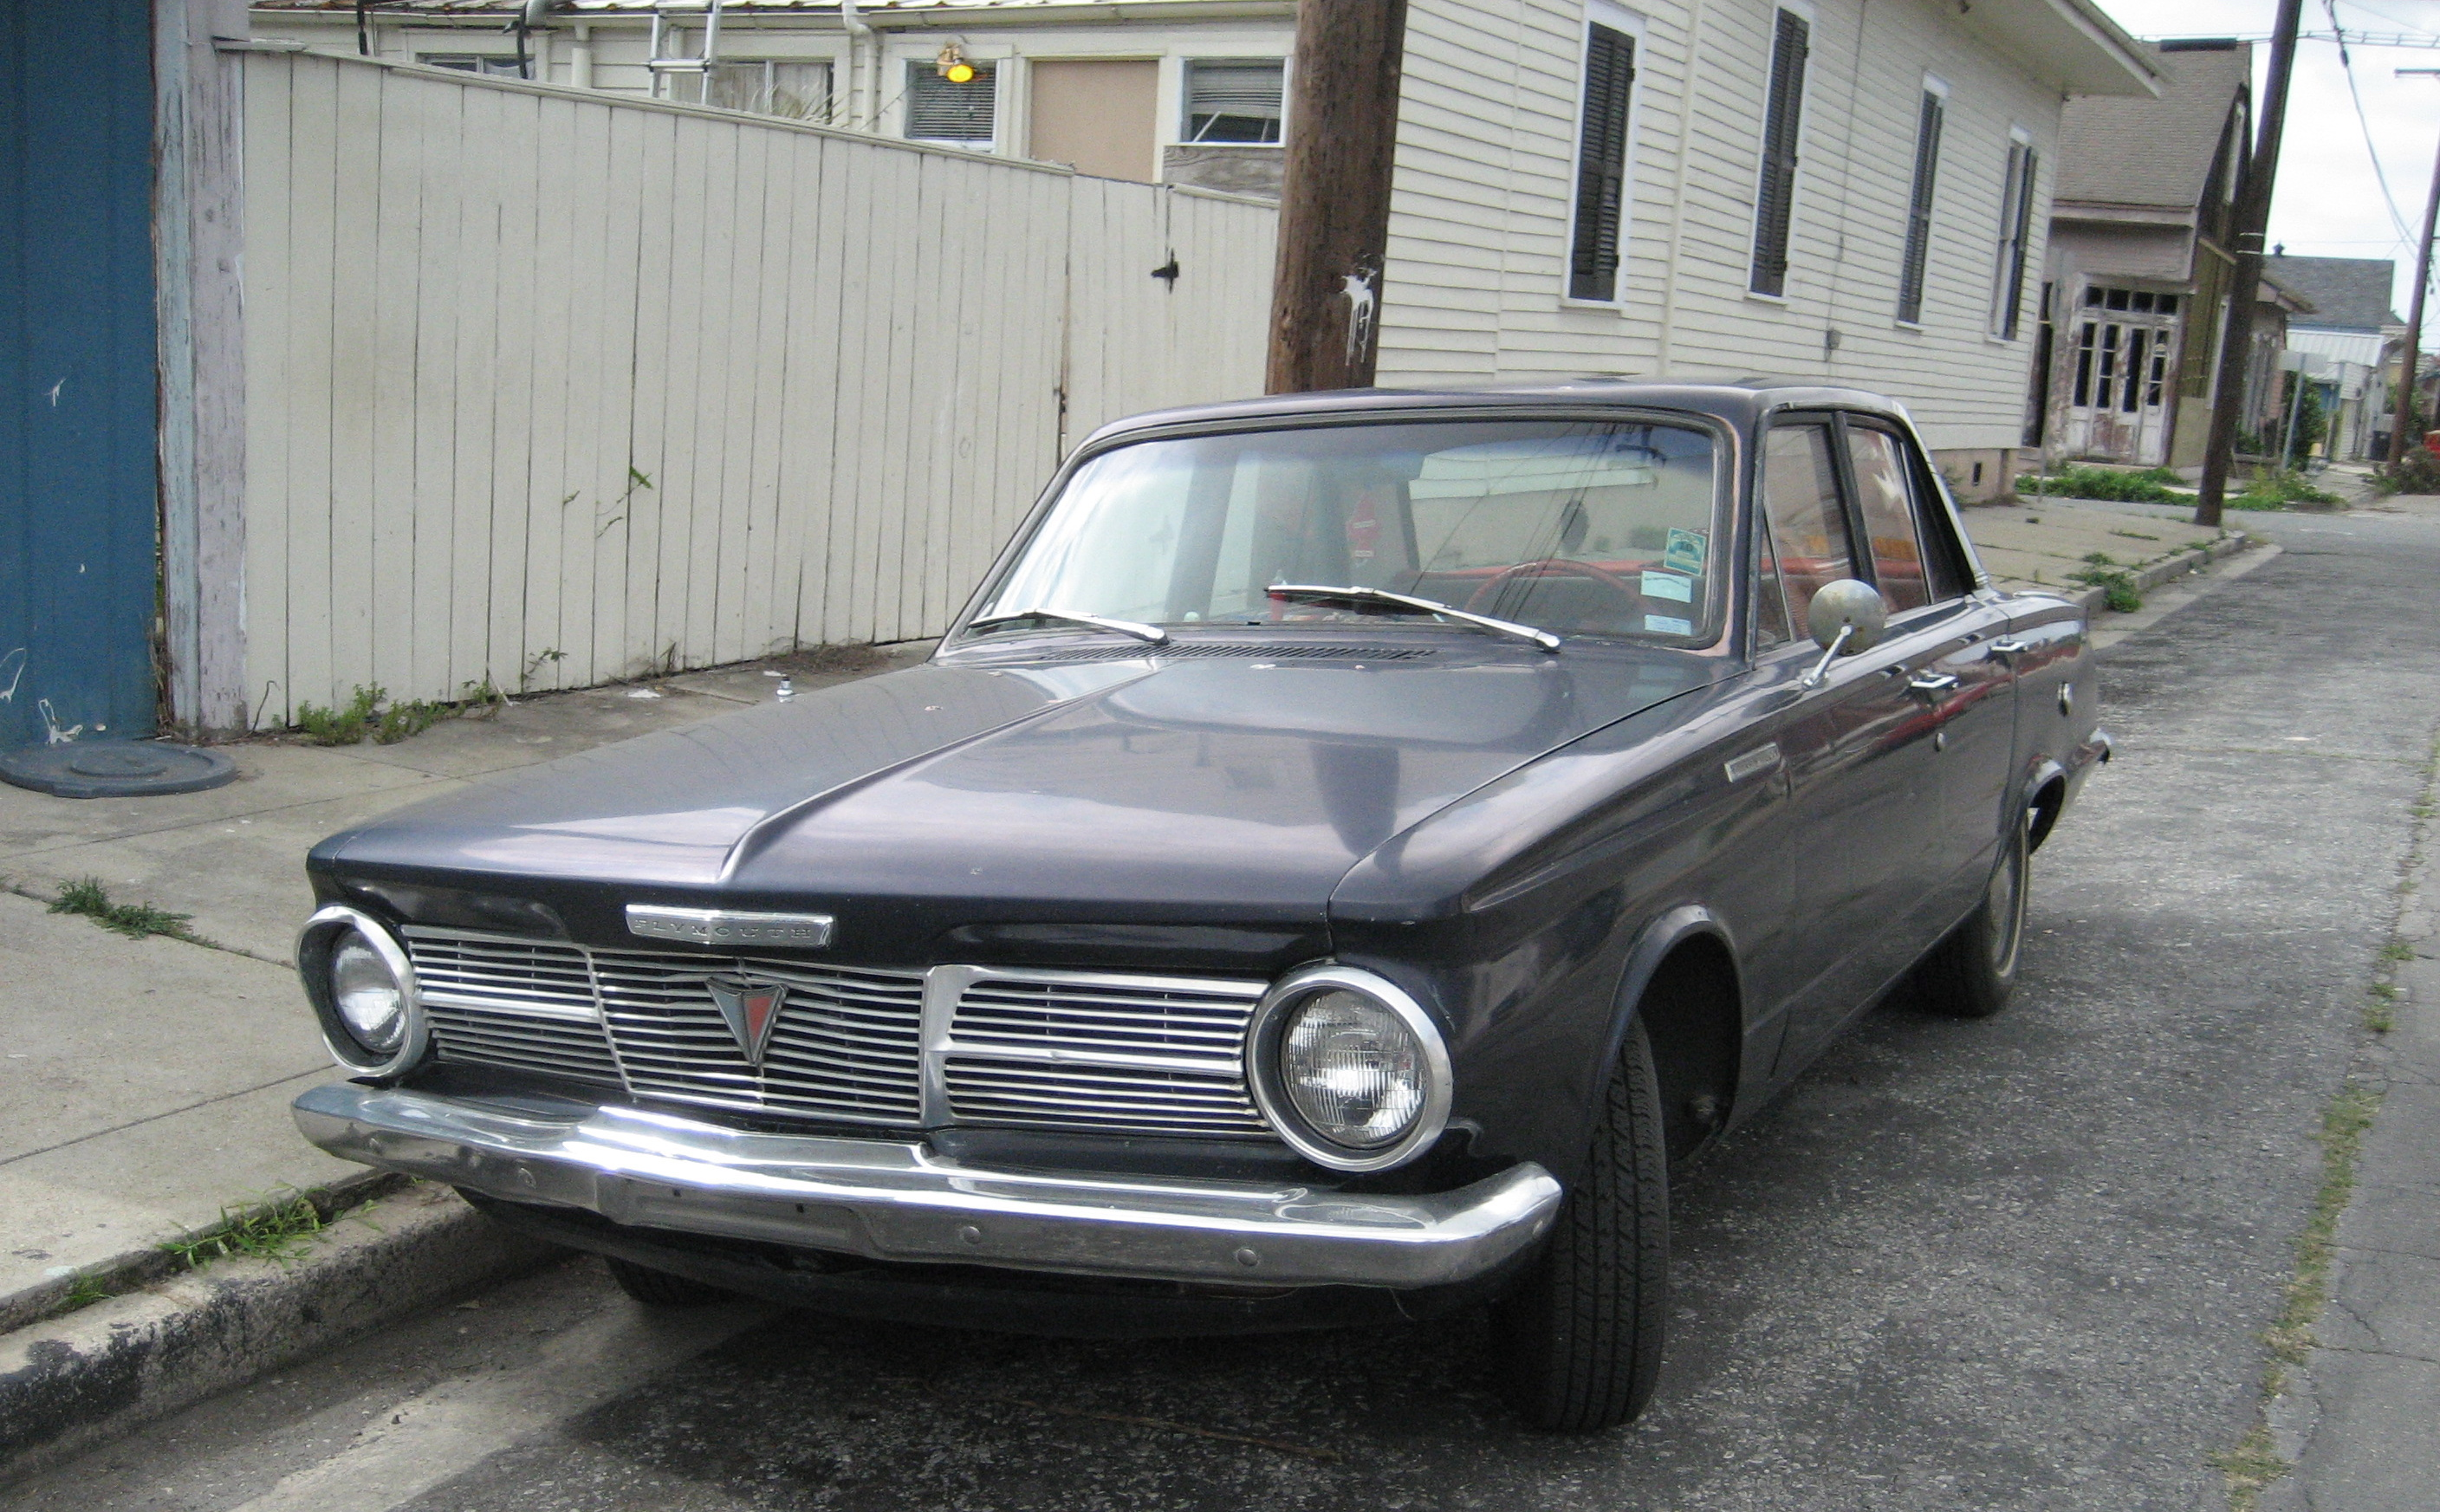 File:1965 Plymouth Valiant 100 black front.jpg